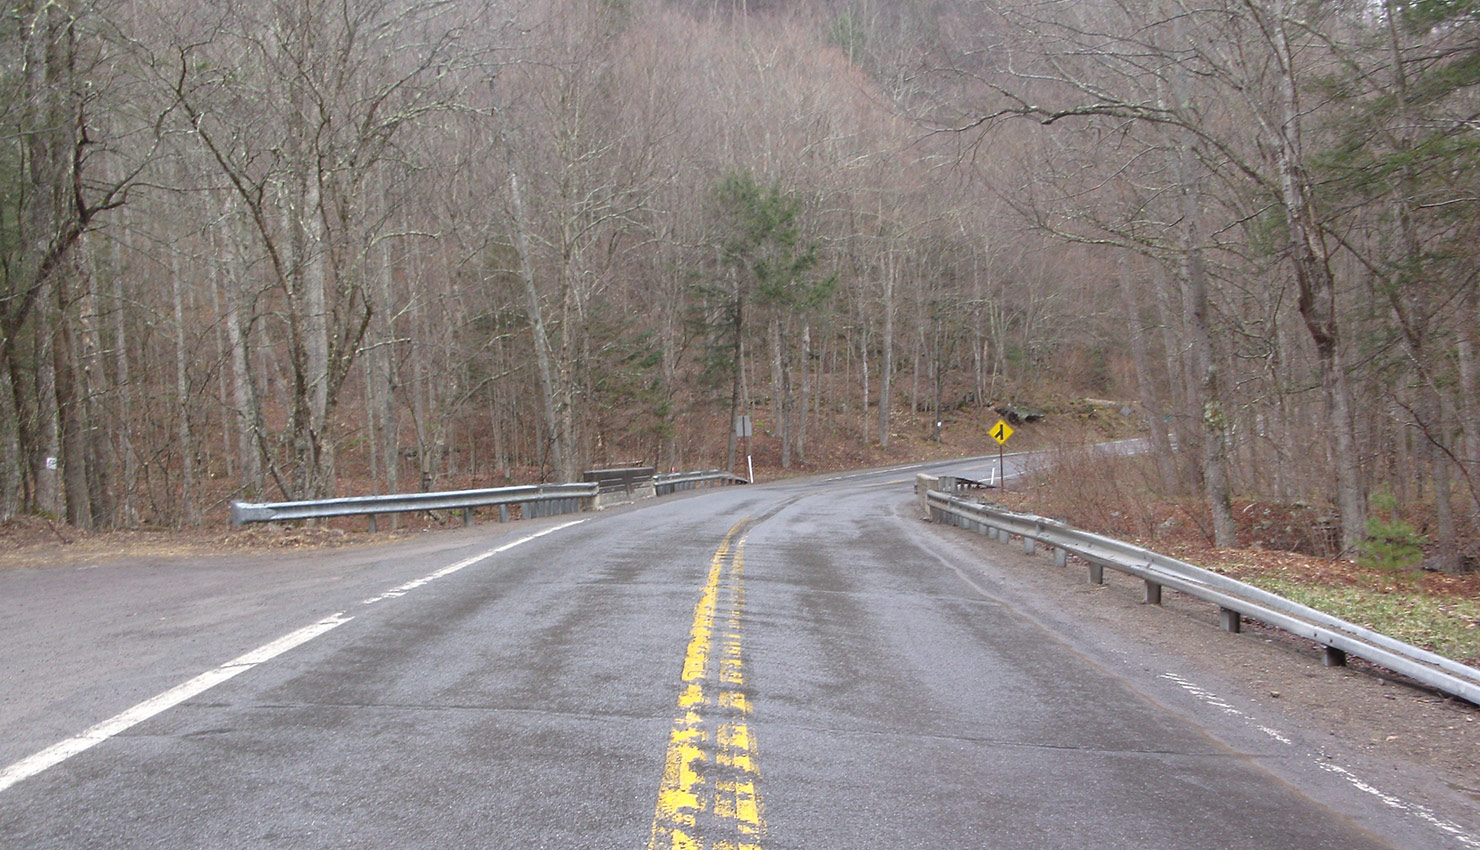 Construction To Begin On Route 154 Bridge In Forks Township